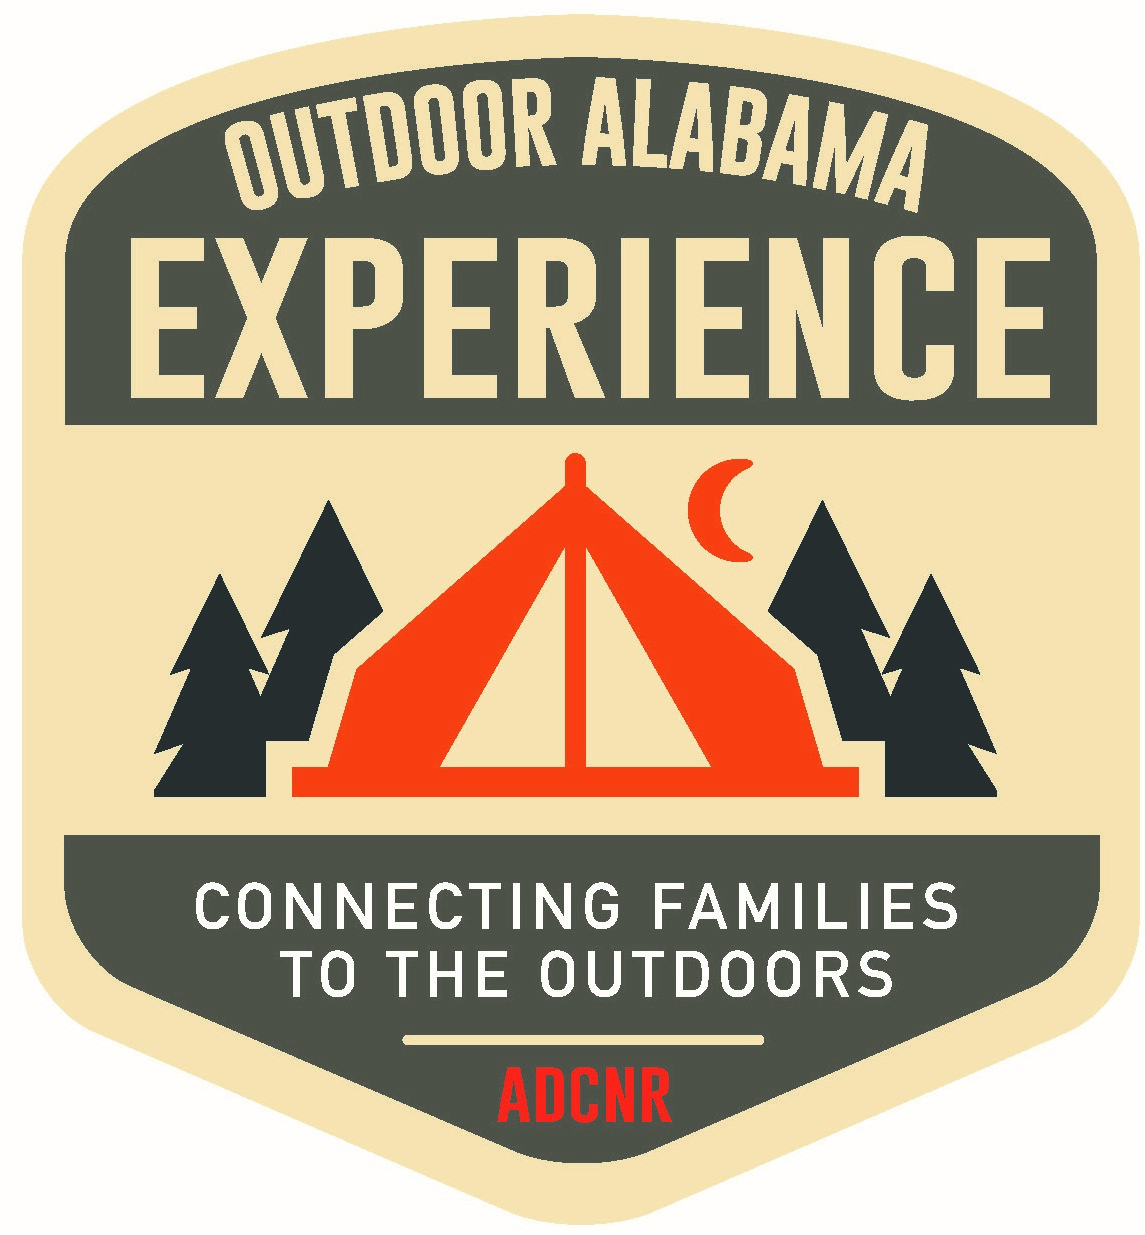 Outdoor Alabama Experience Coming to Oak Mountain in September